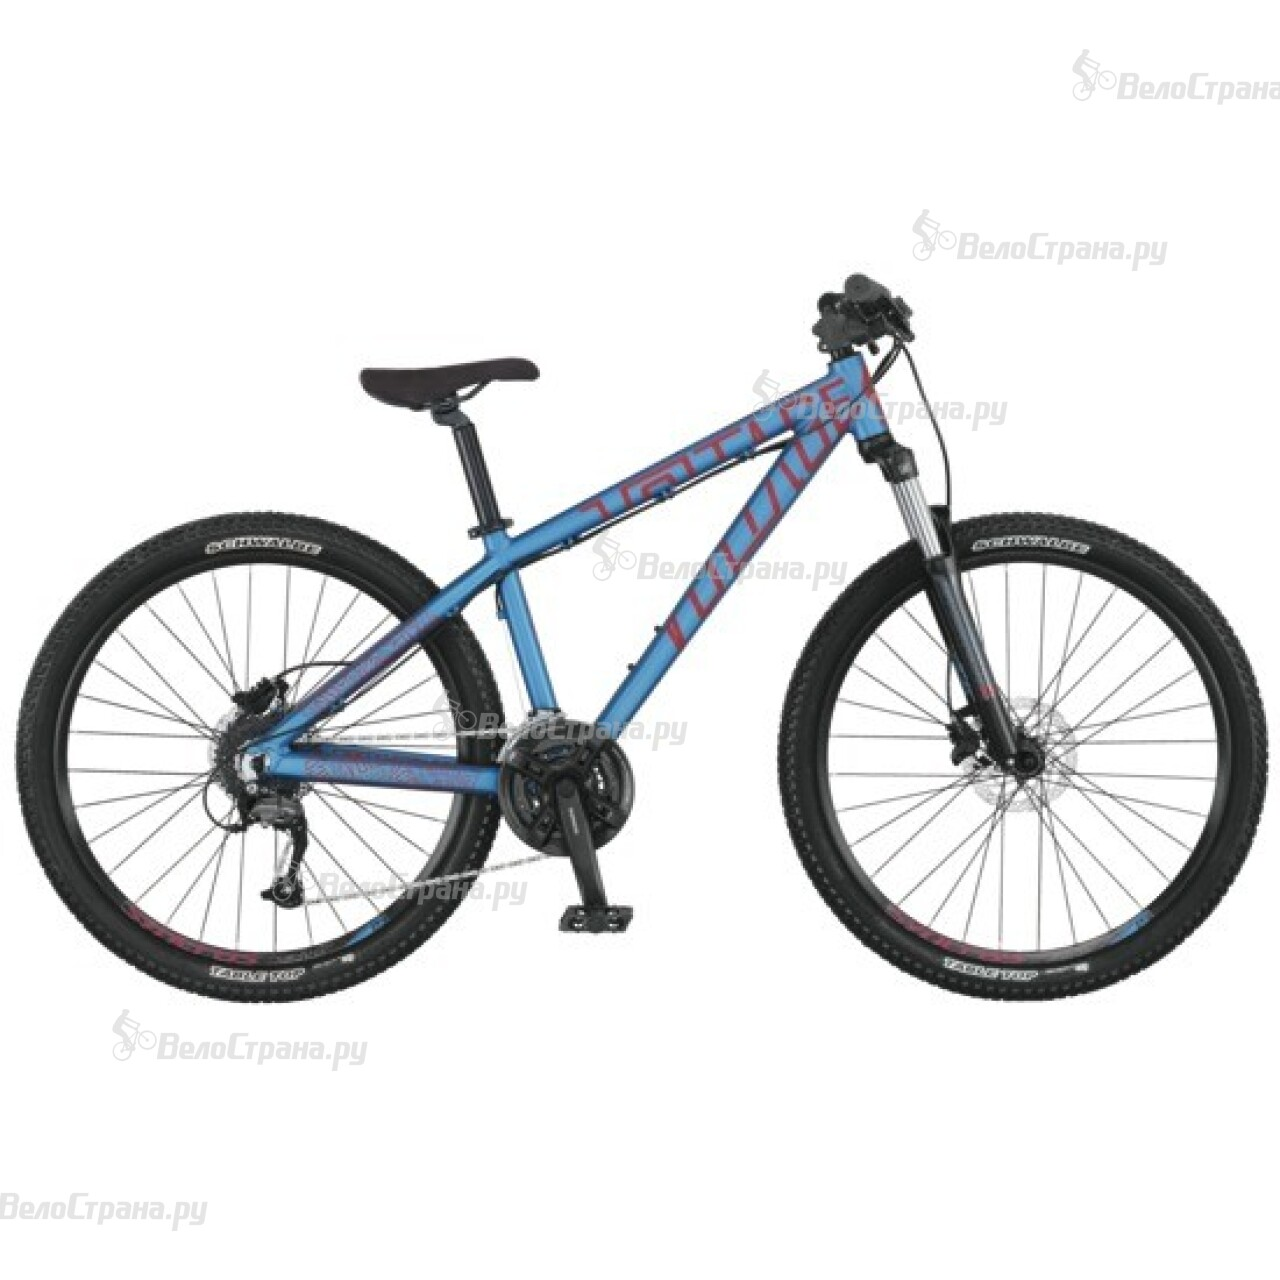 Велосипед Scott Voltage YZ 20 (2014) велосипед scott voltage yz 20 2014